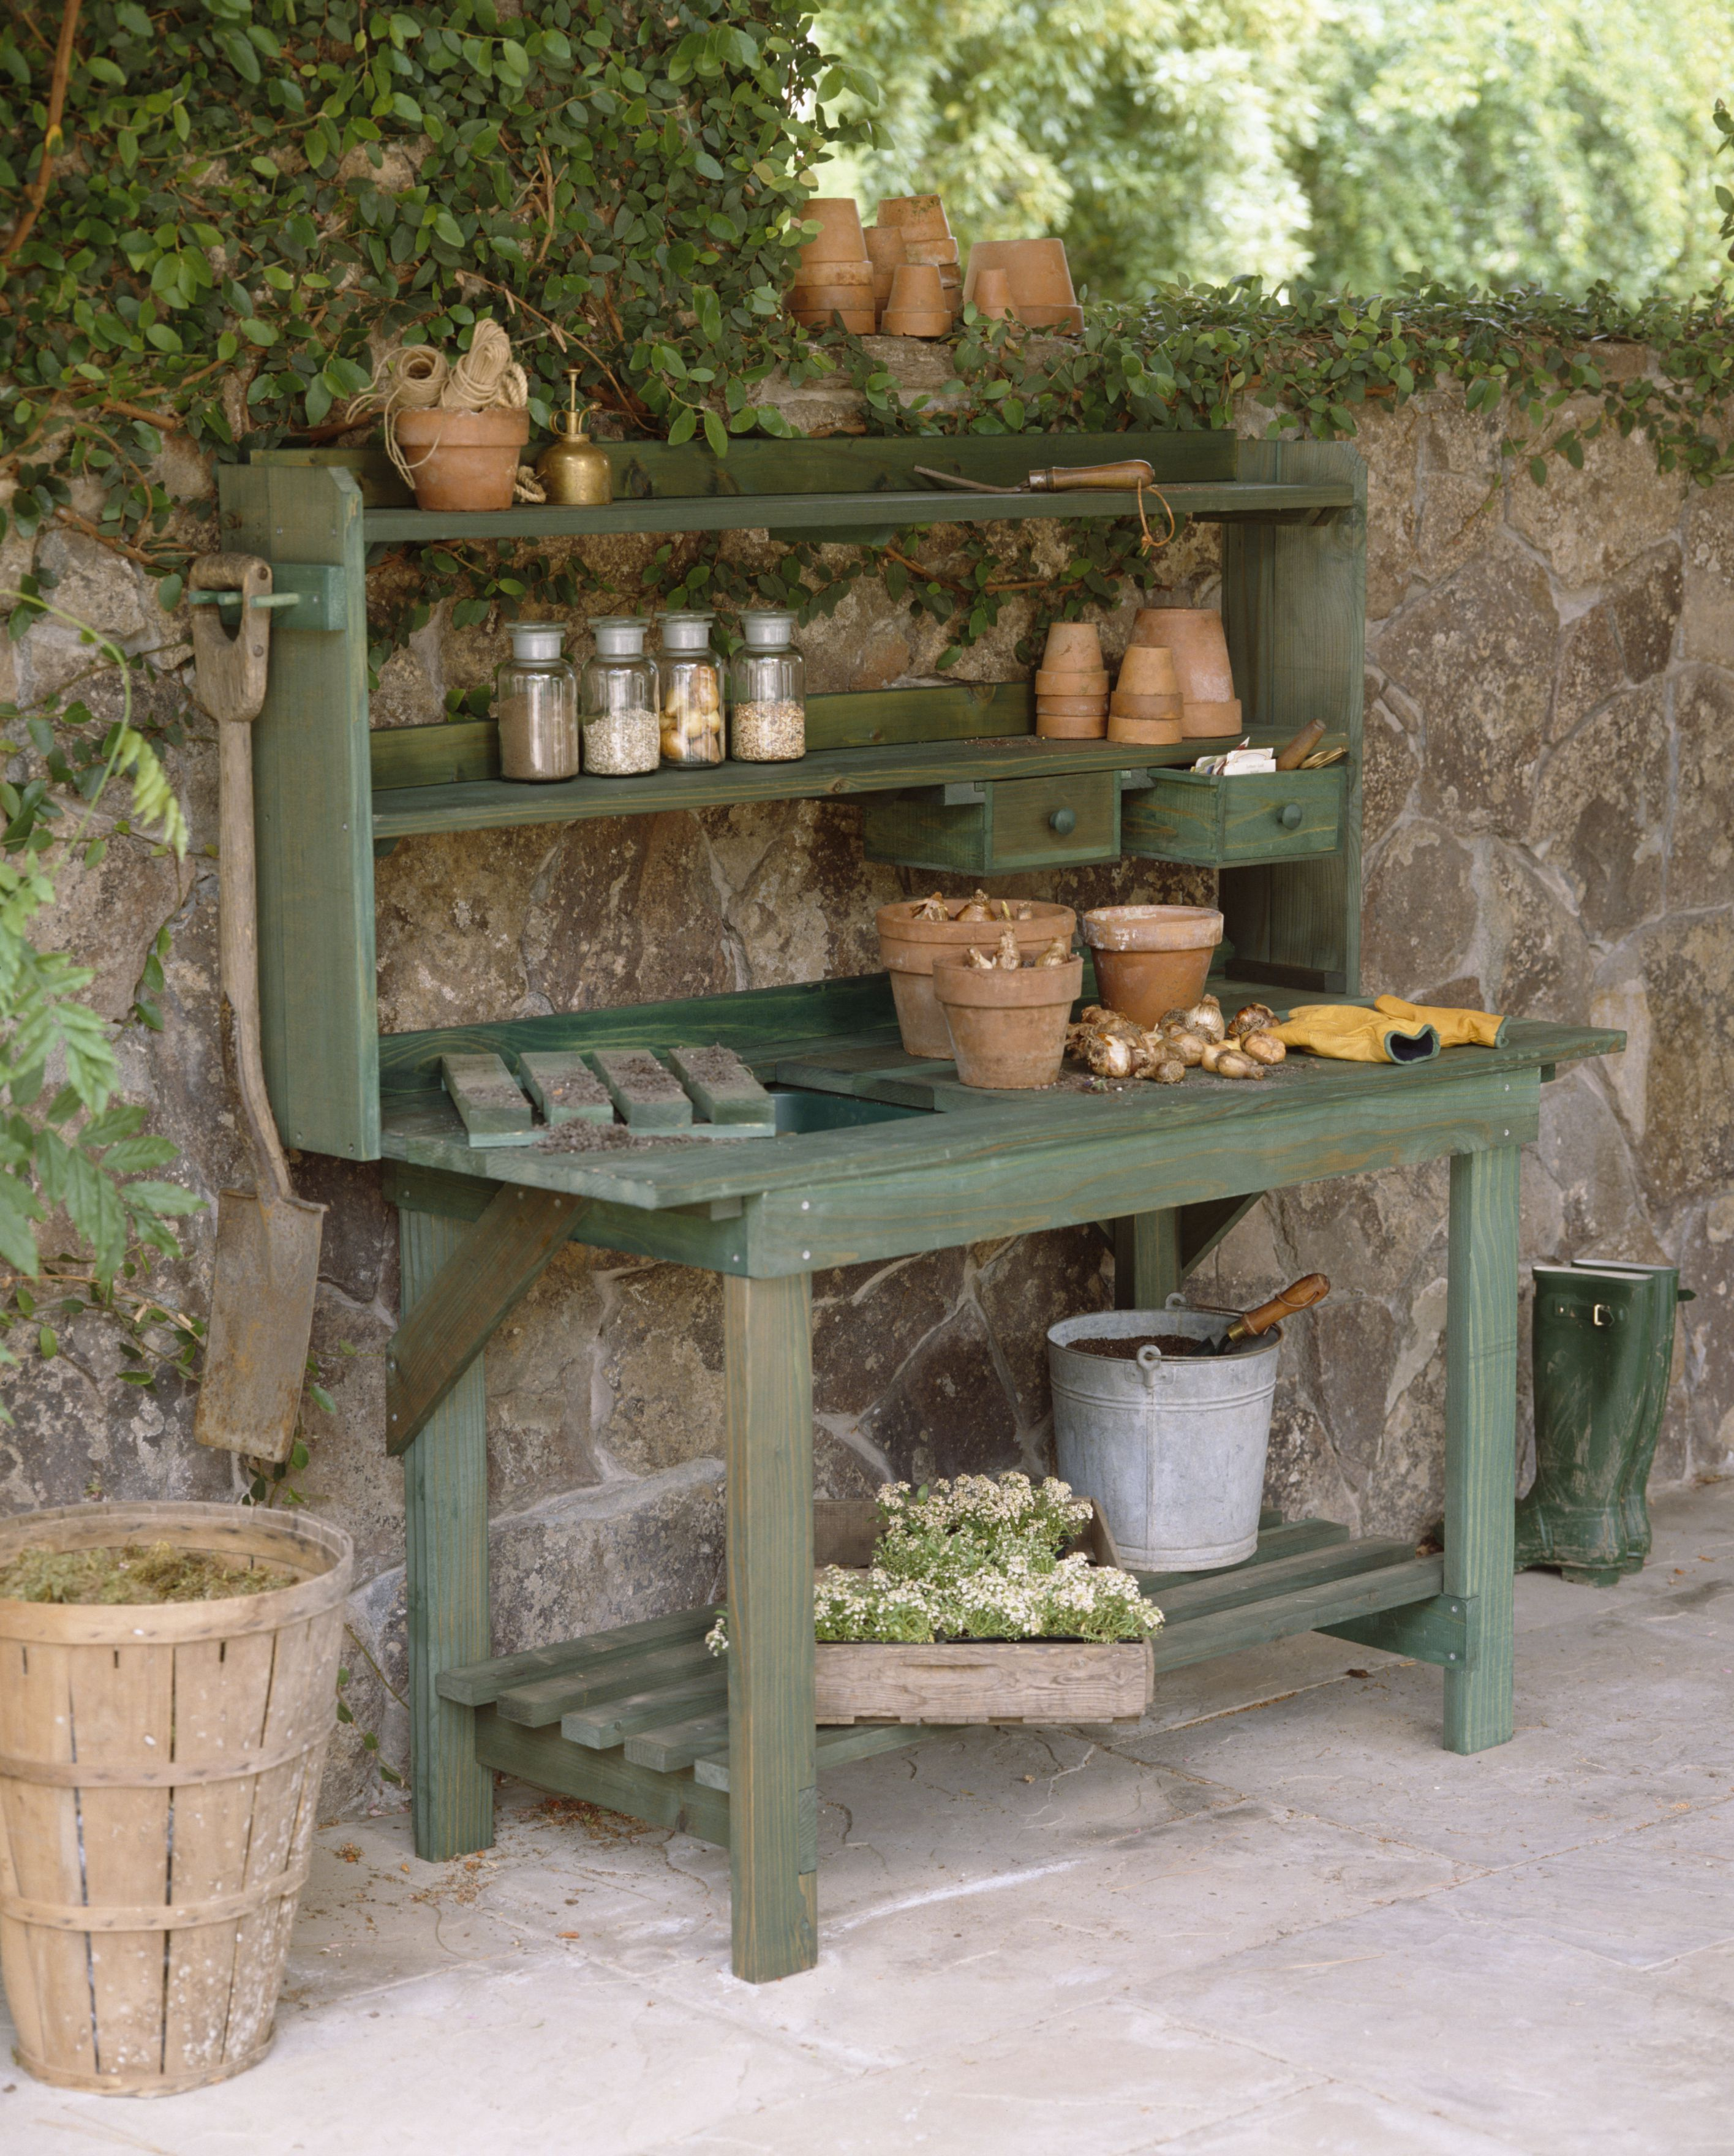 What To Look For In A Potting Bench